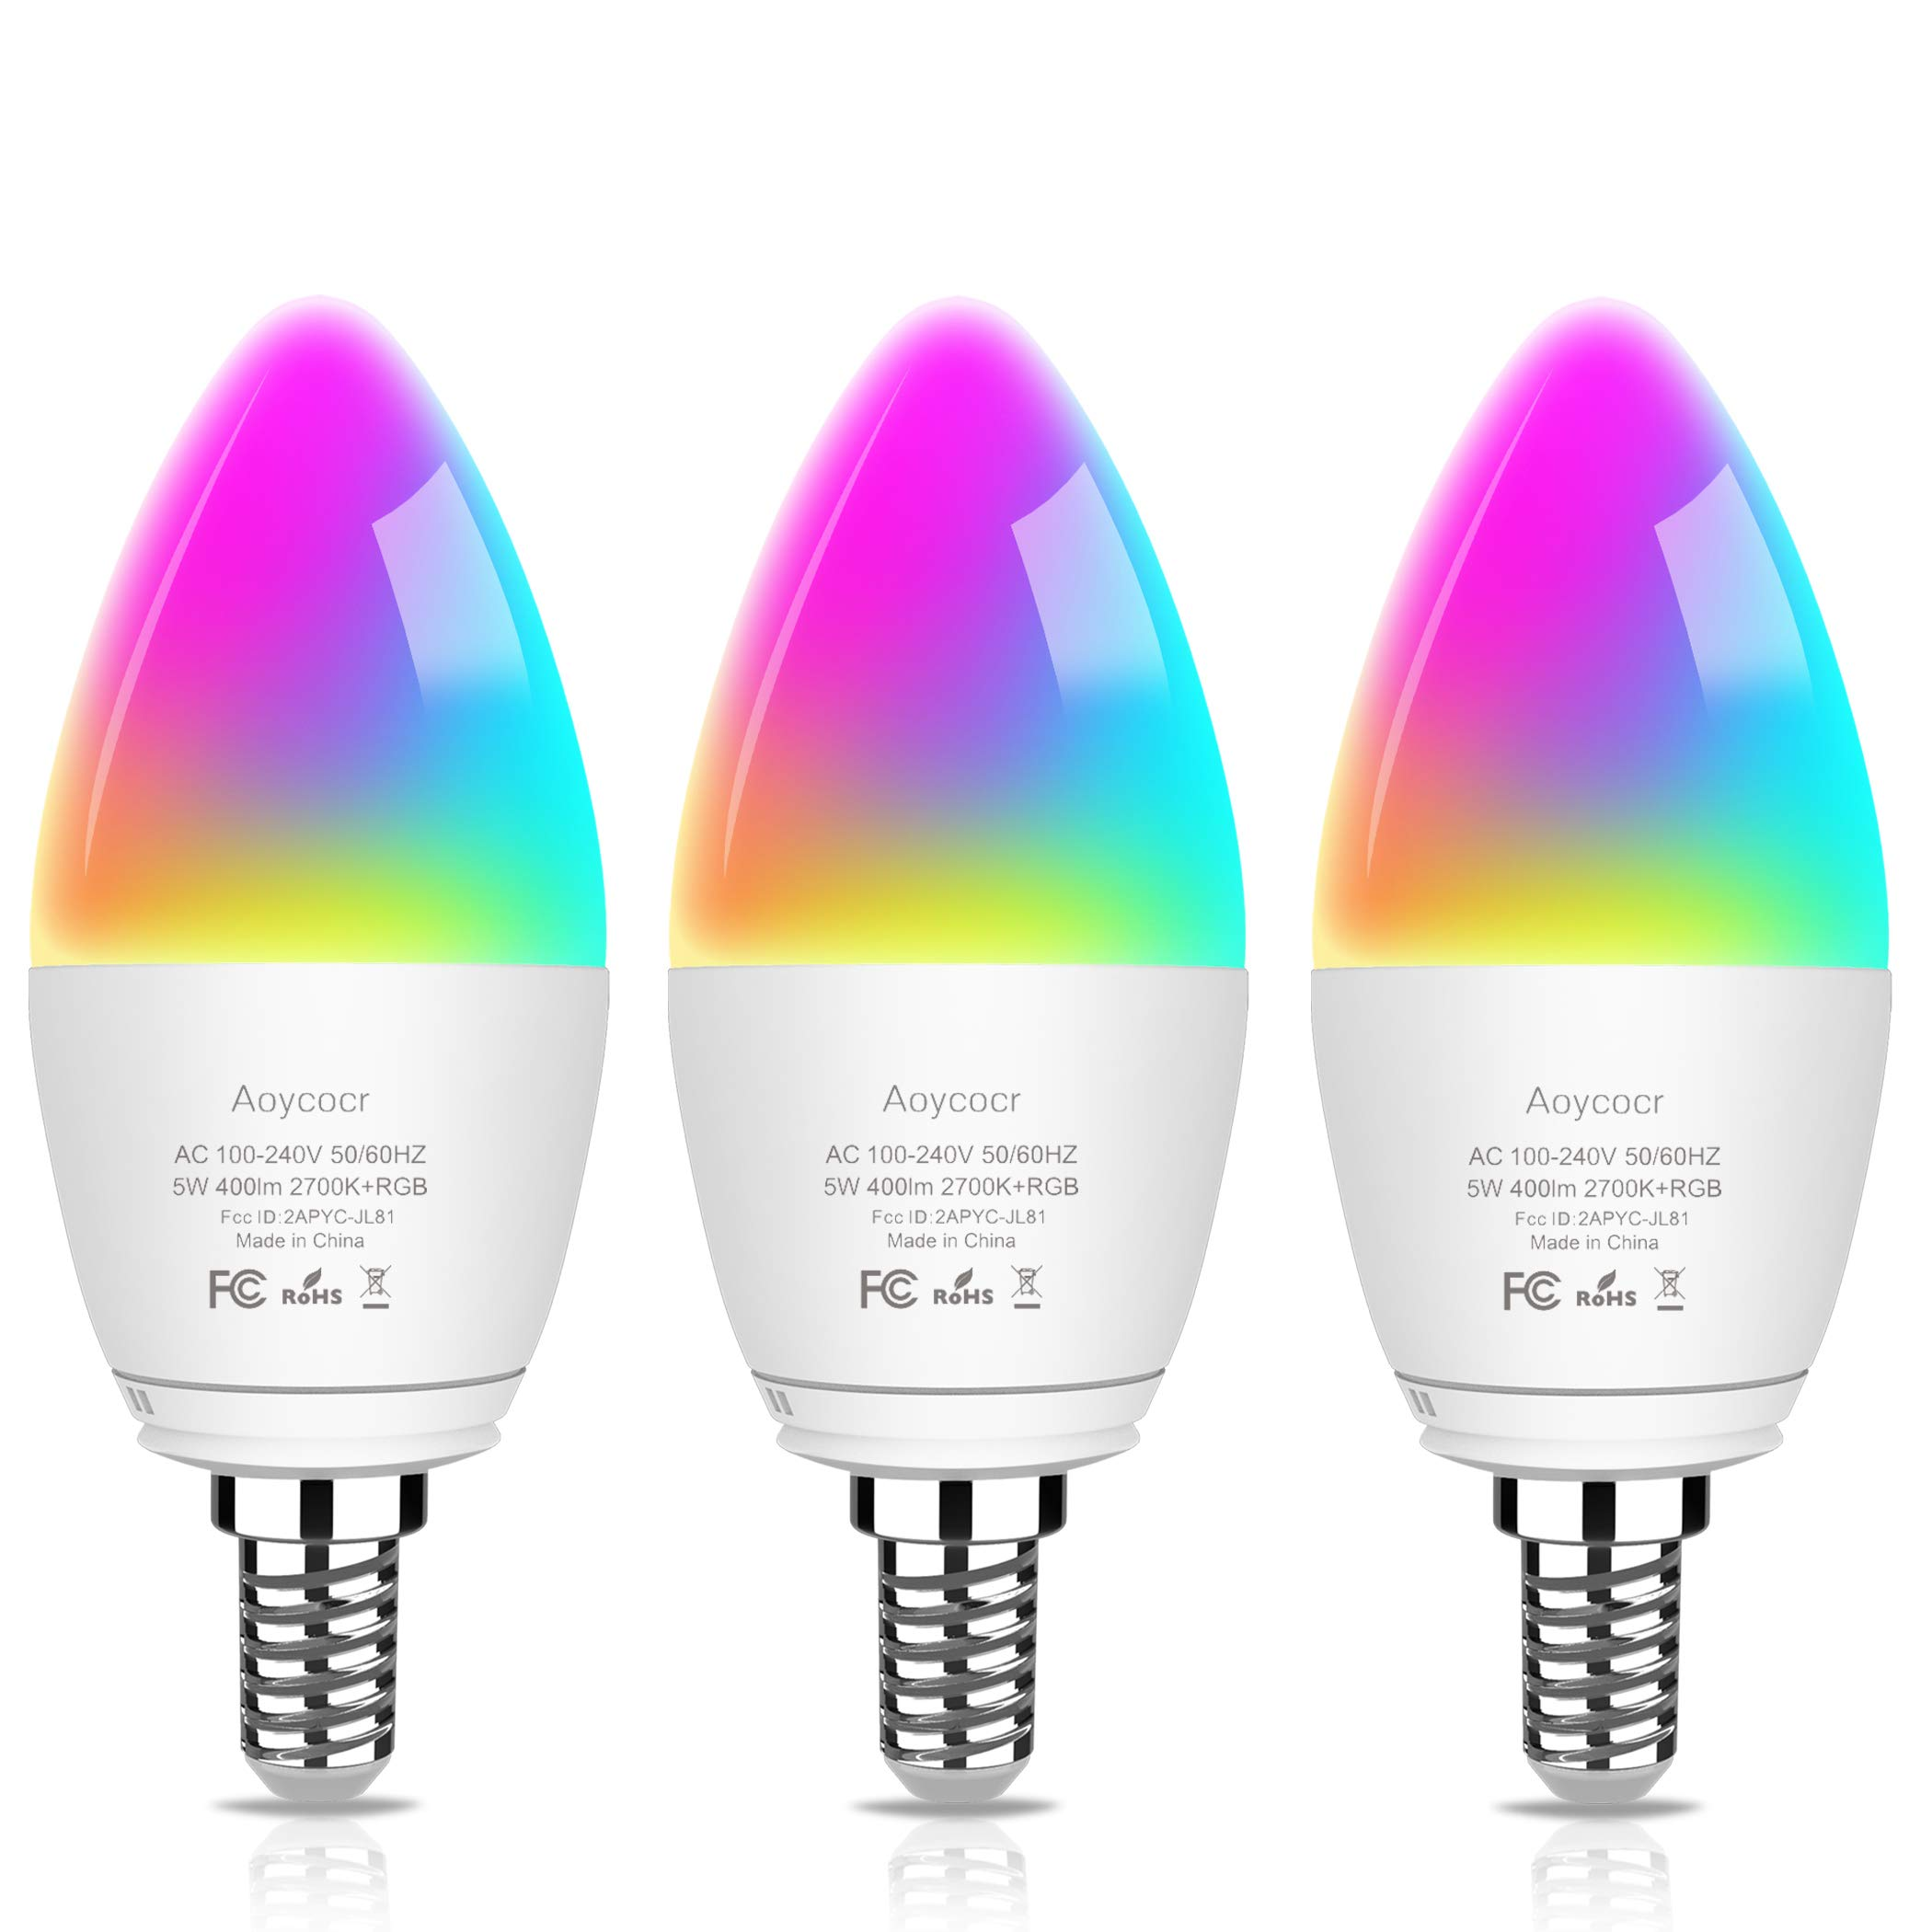 Smart LED Candalabra Light Bulbs - Aoycocr 5W 400 Lumens E12 Ceiling Fan Light Bulb, Tunable White 2700K-6500K & RGB Candle Bulb - Compatible with Alexa Google Home for Home Festival Decor (3 Pack)